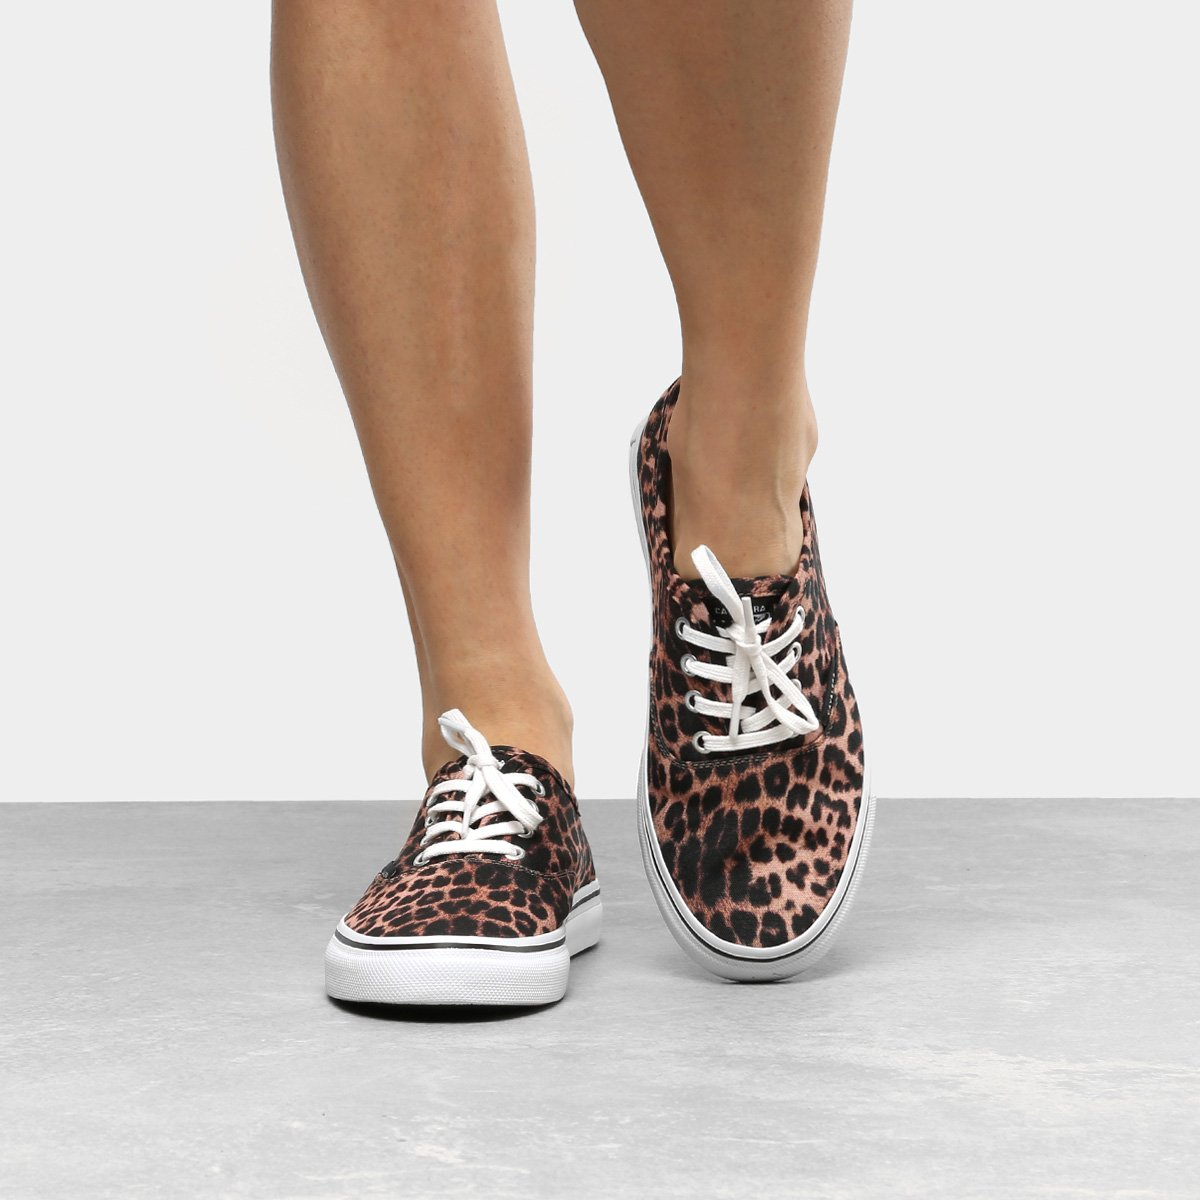 Tênis com estampa animal print 2020